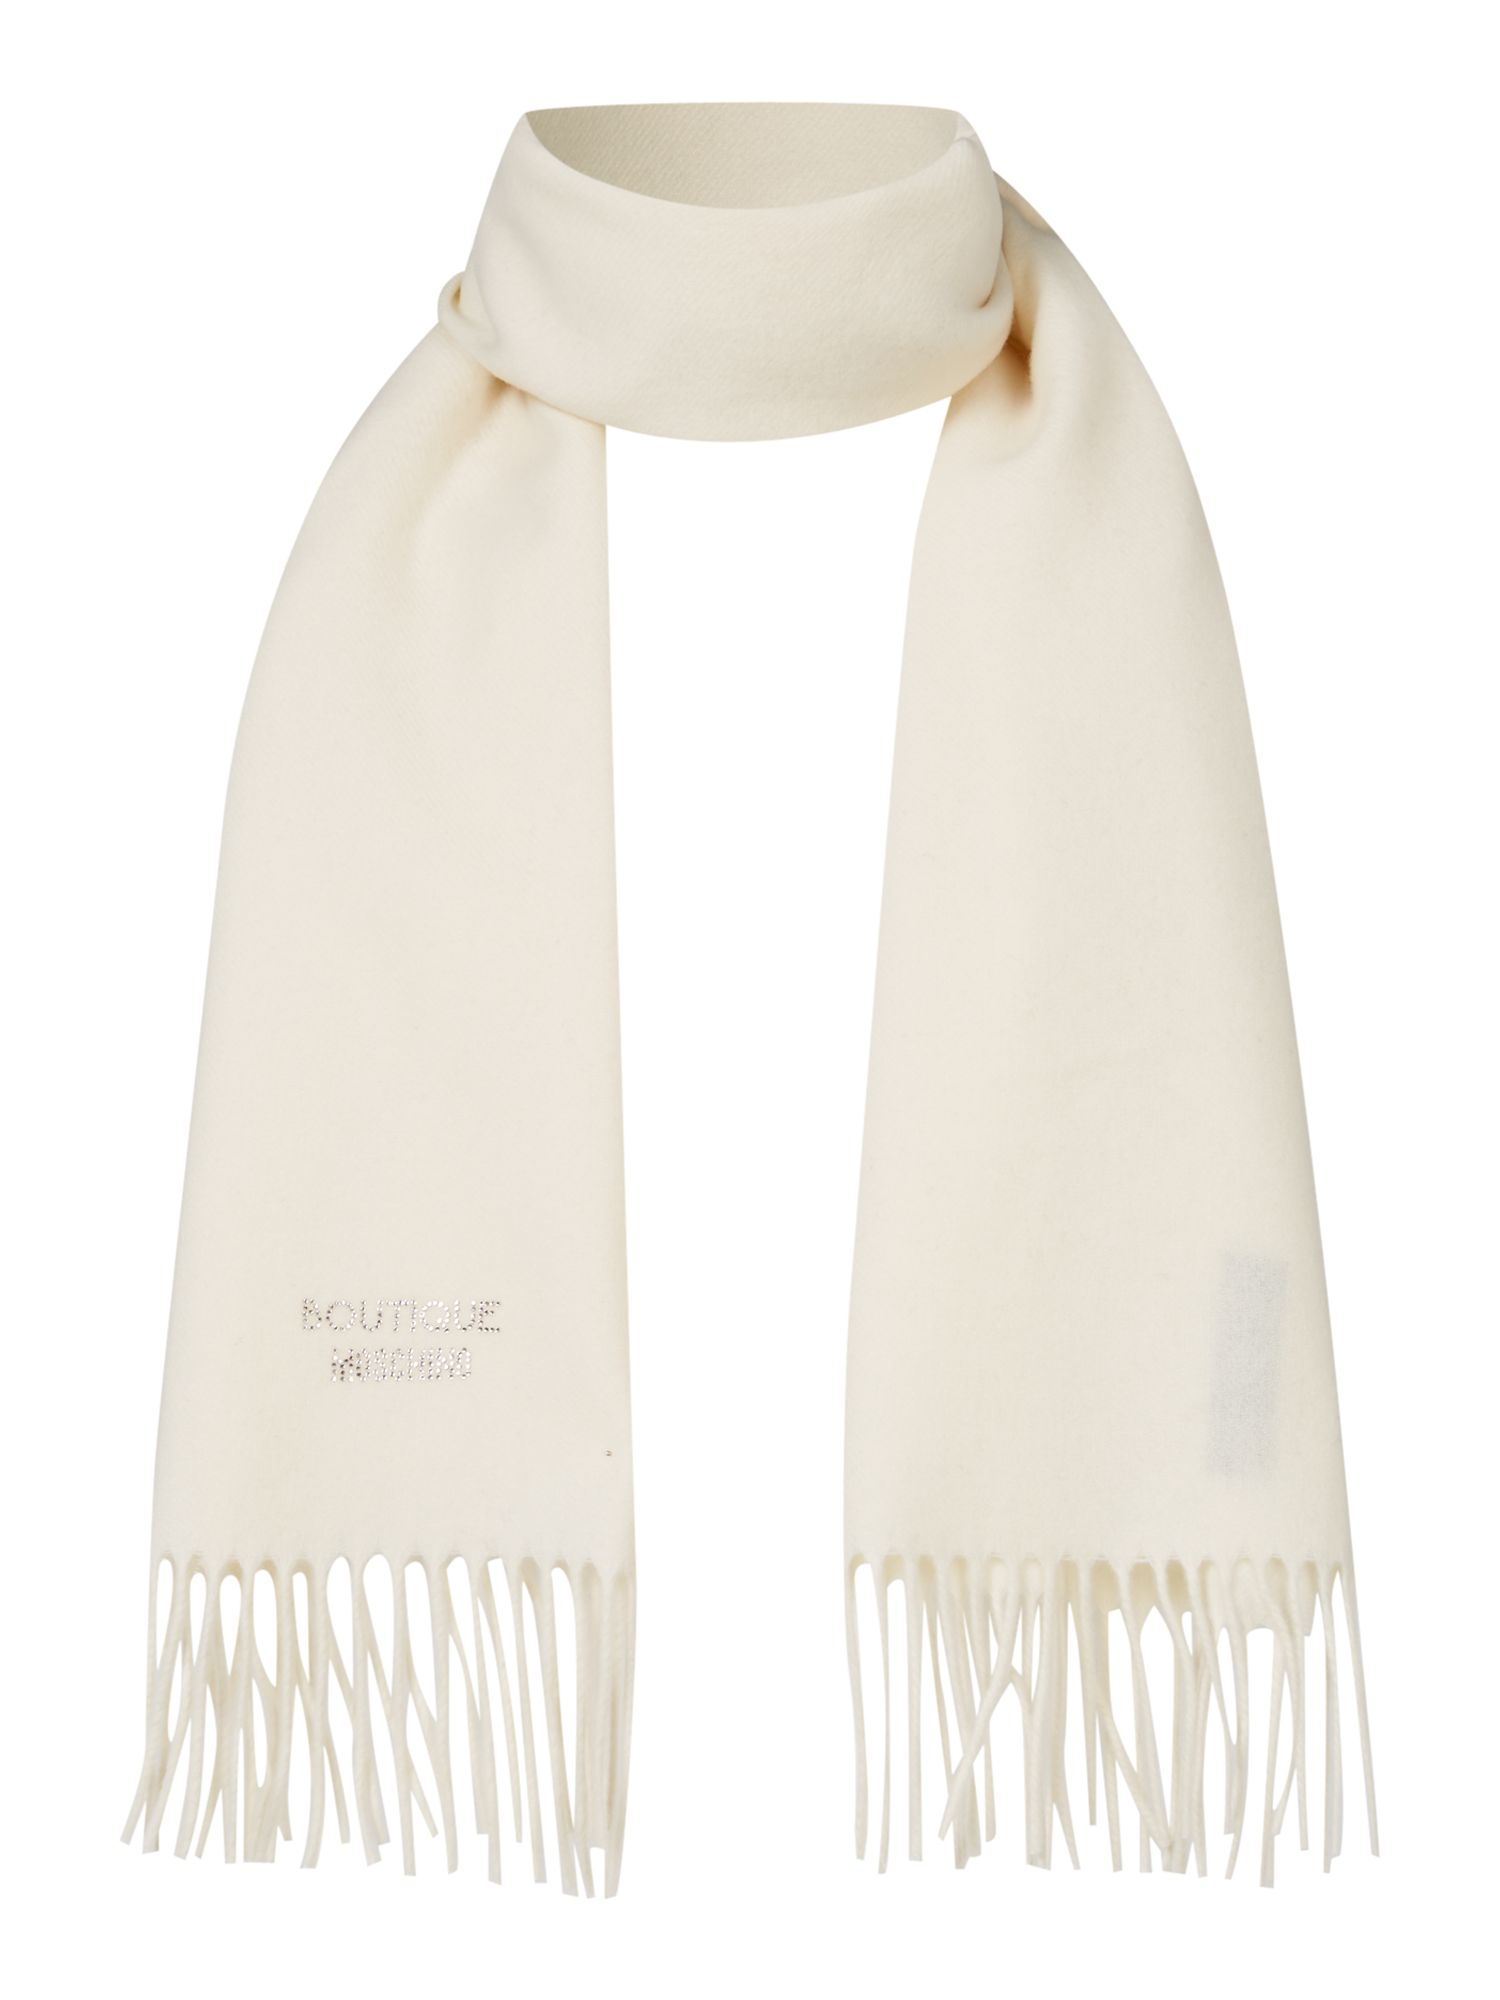 Boutique Moschino Boutique Moschino Diamante logo scarf, Cream